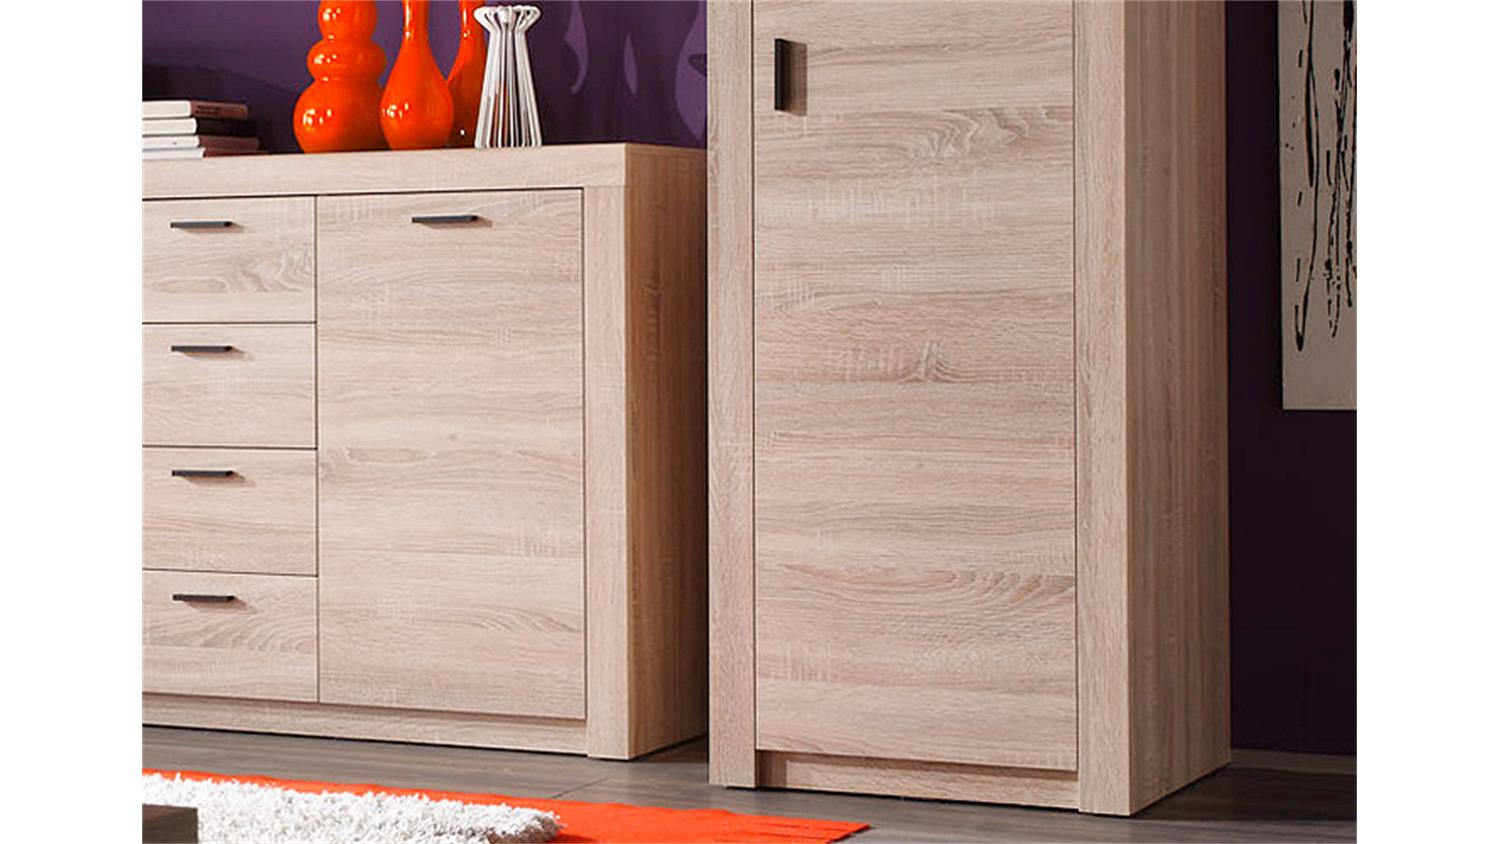 wohnwand 2 nemezis sonoma eiche inkl beleuchtung. Black Bedroom Furniture Sets. Home Design Ideas